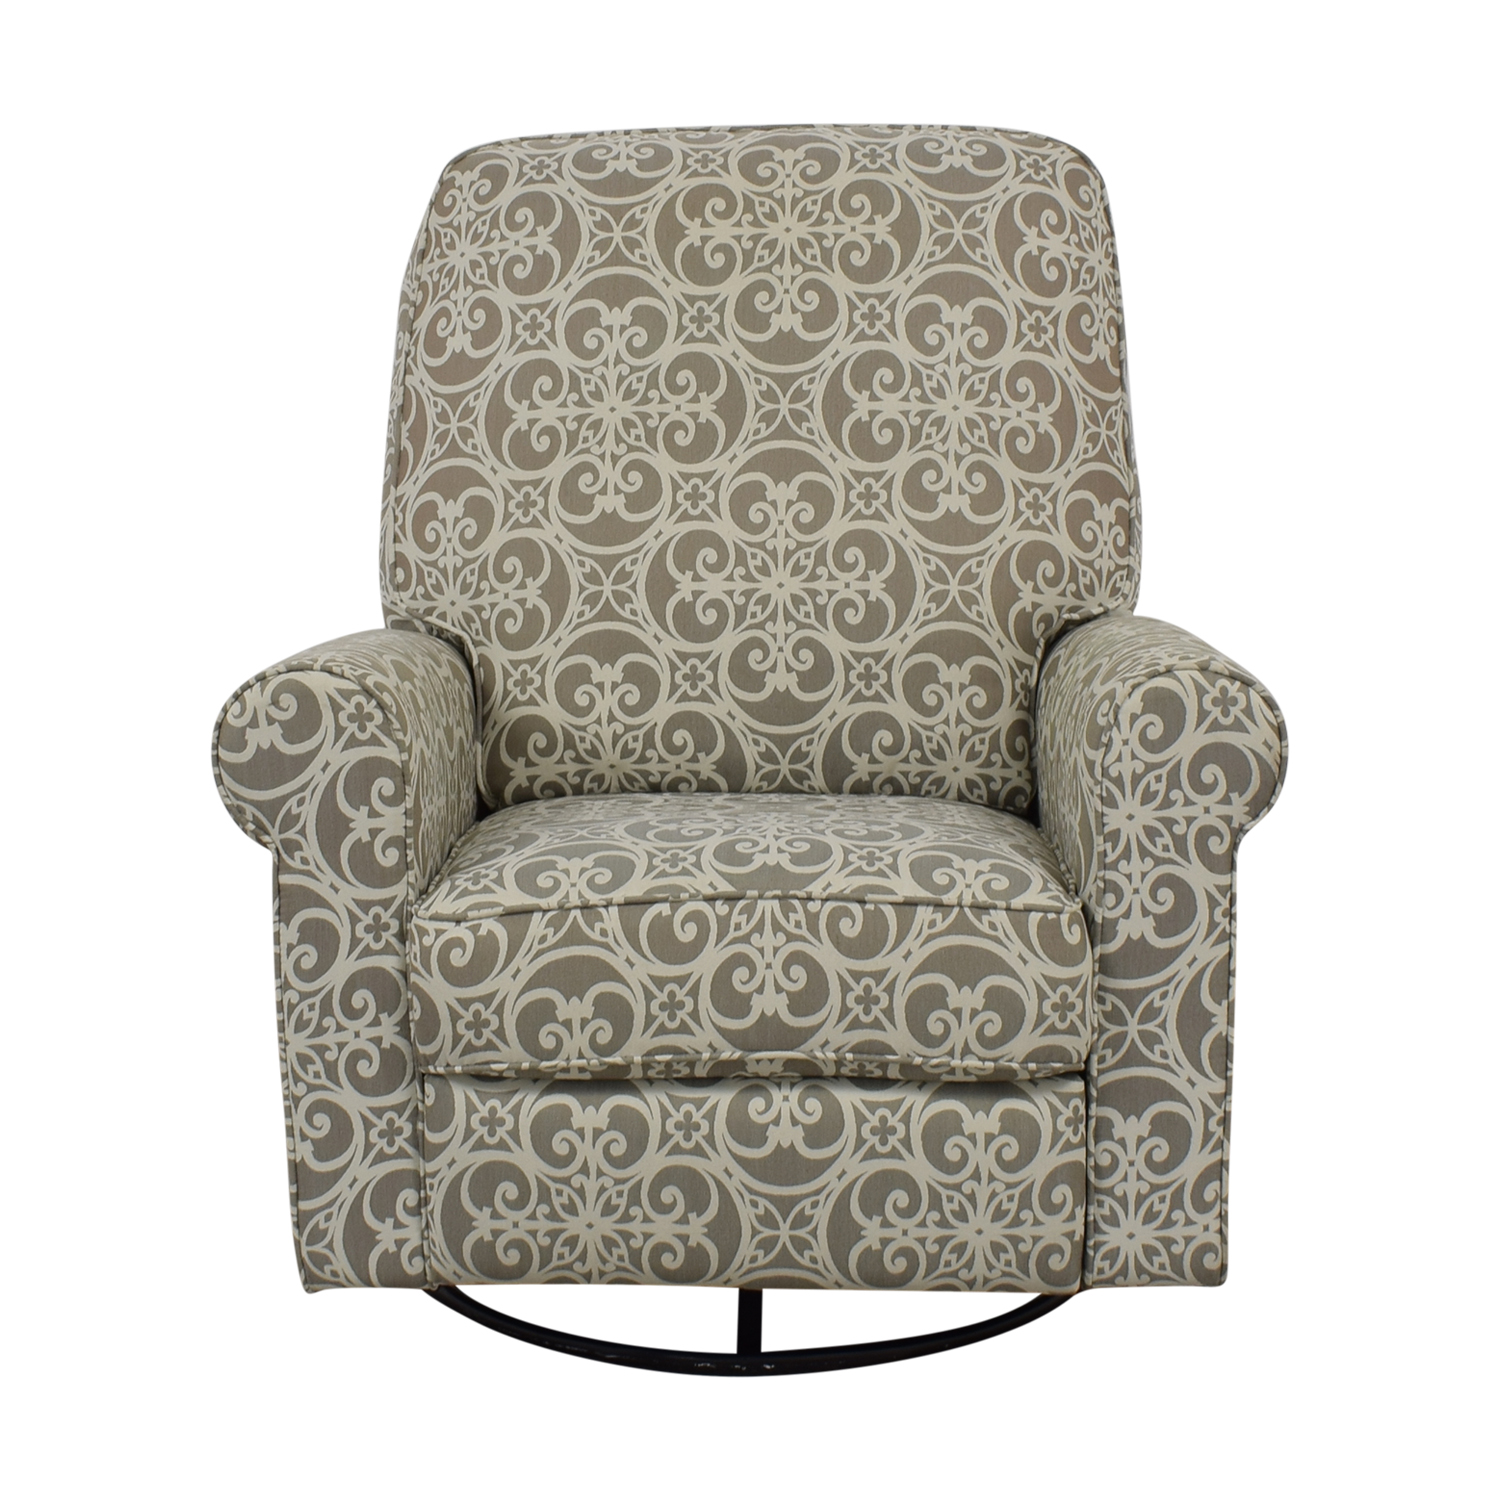 Abbyson Living Abbyson Living Grey and White Swivel Glider Rocking Chair for sale